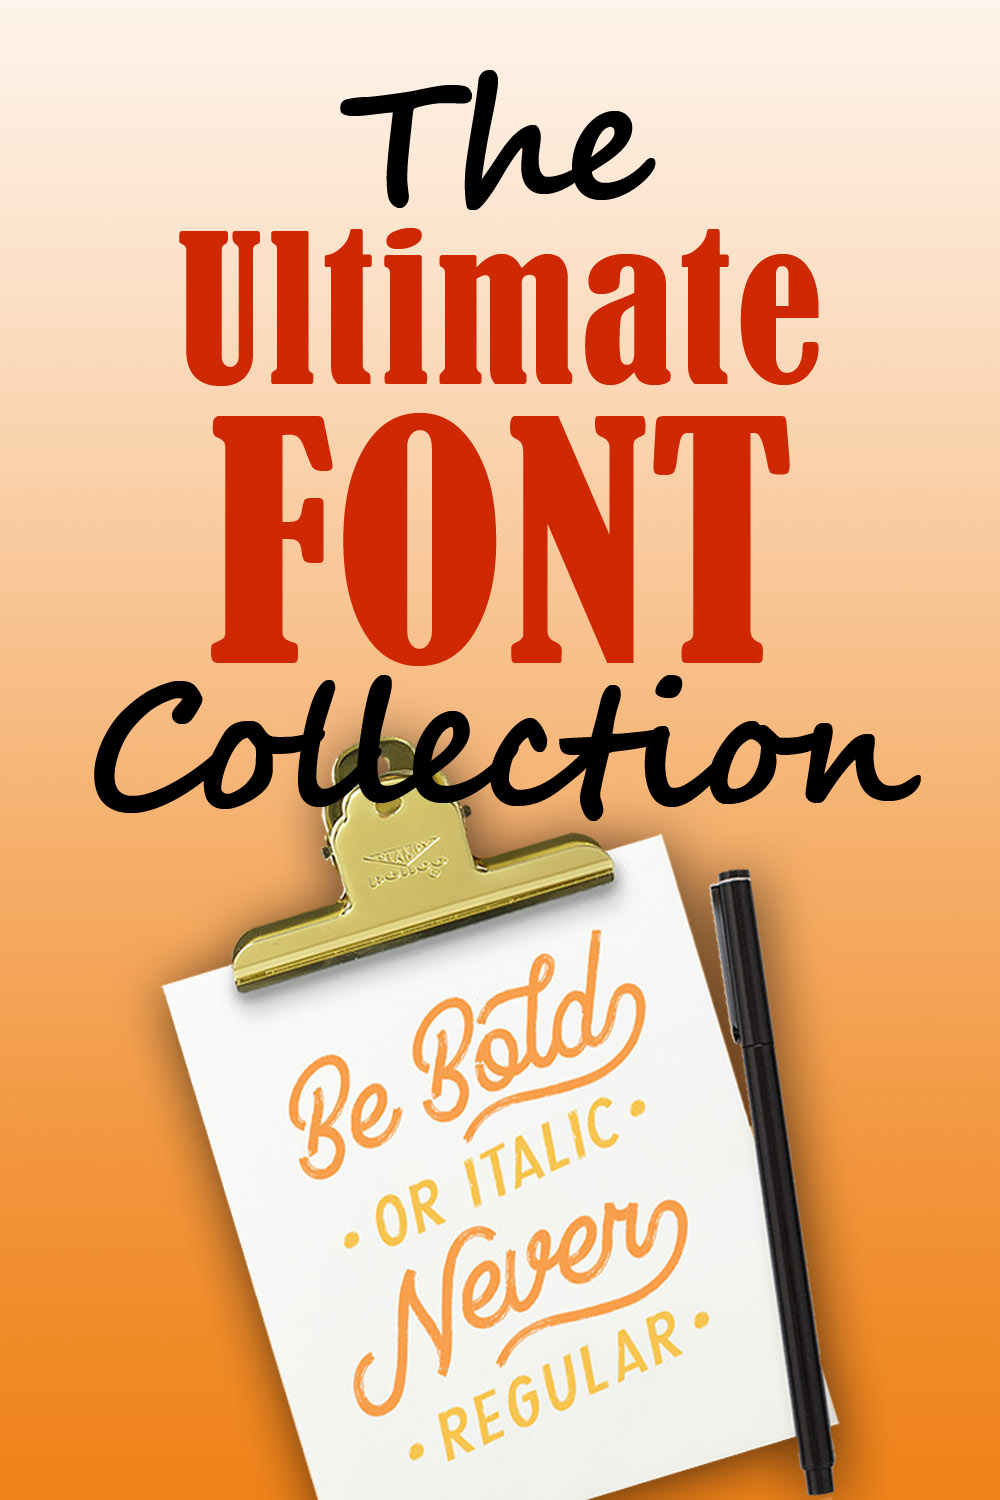 The Ultimate Font Collection.jpg